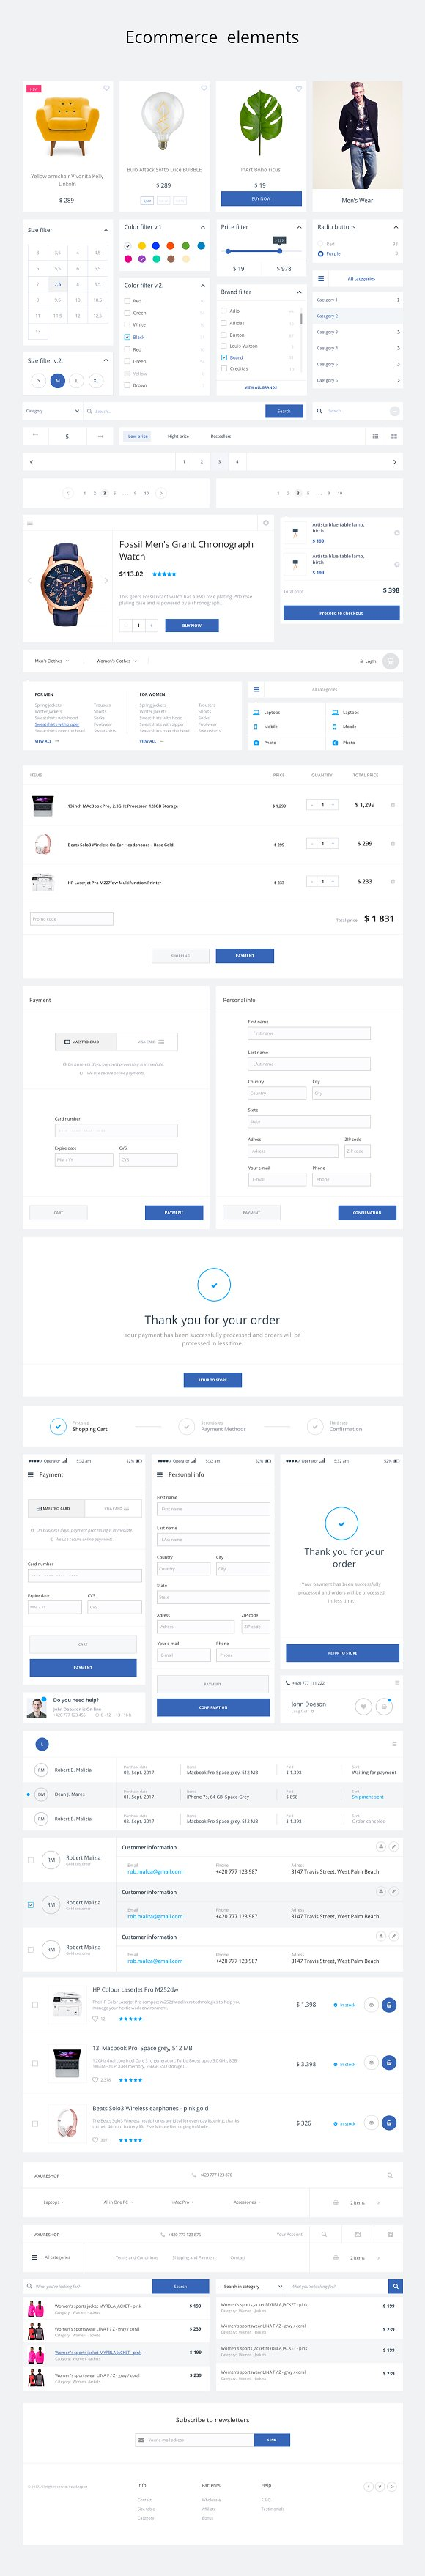 Startup Axure Template-220 elements